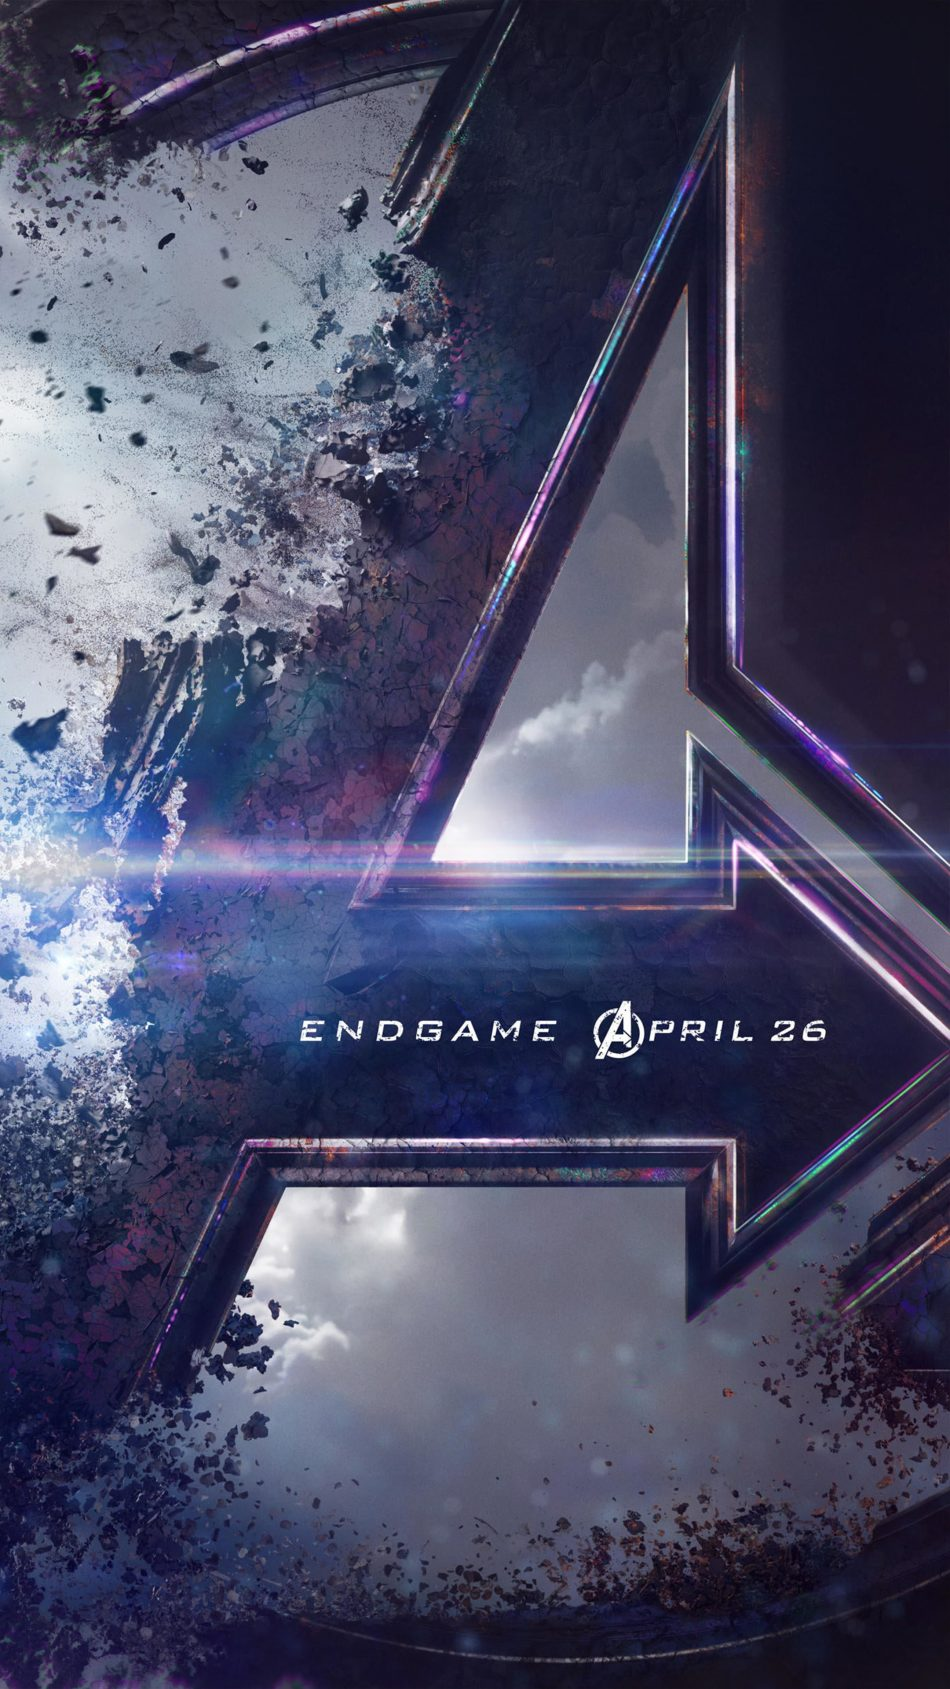 Avengers Endgame Logo 4K Ultra HD Mobile Wallpaper